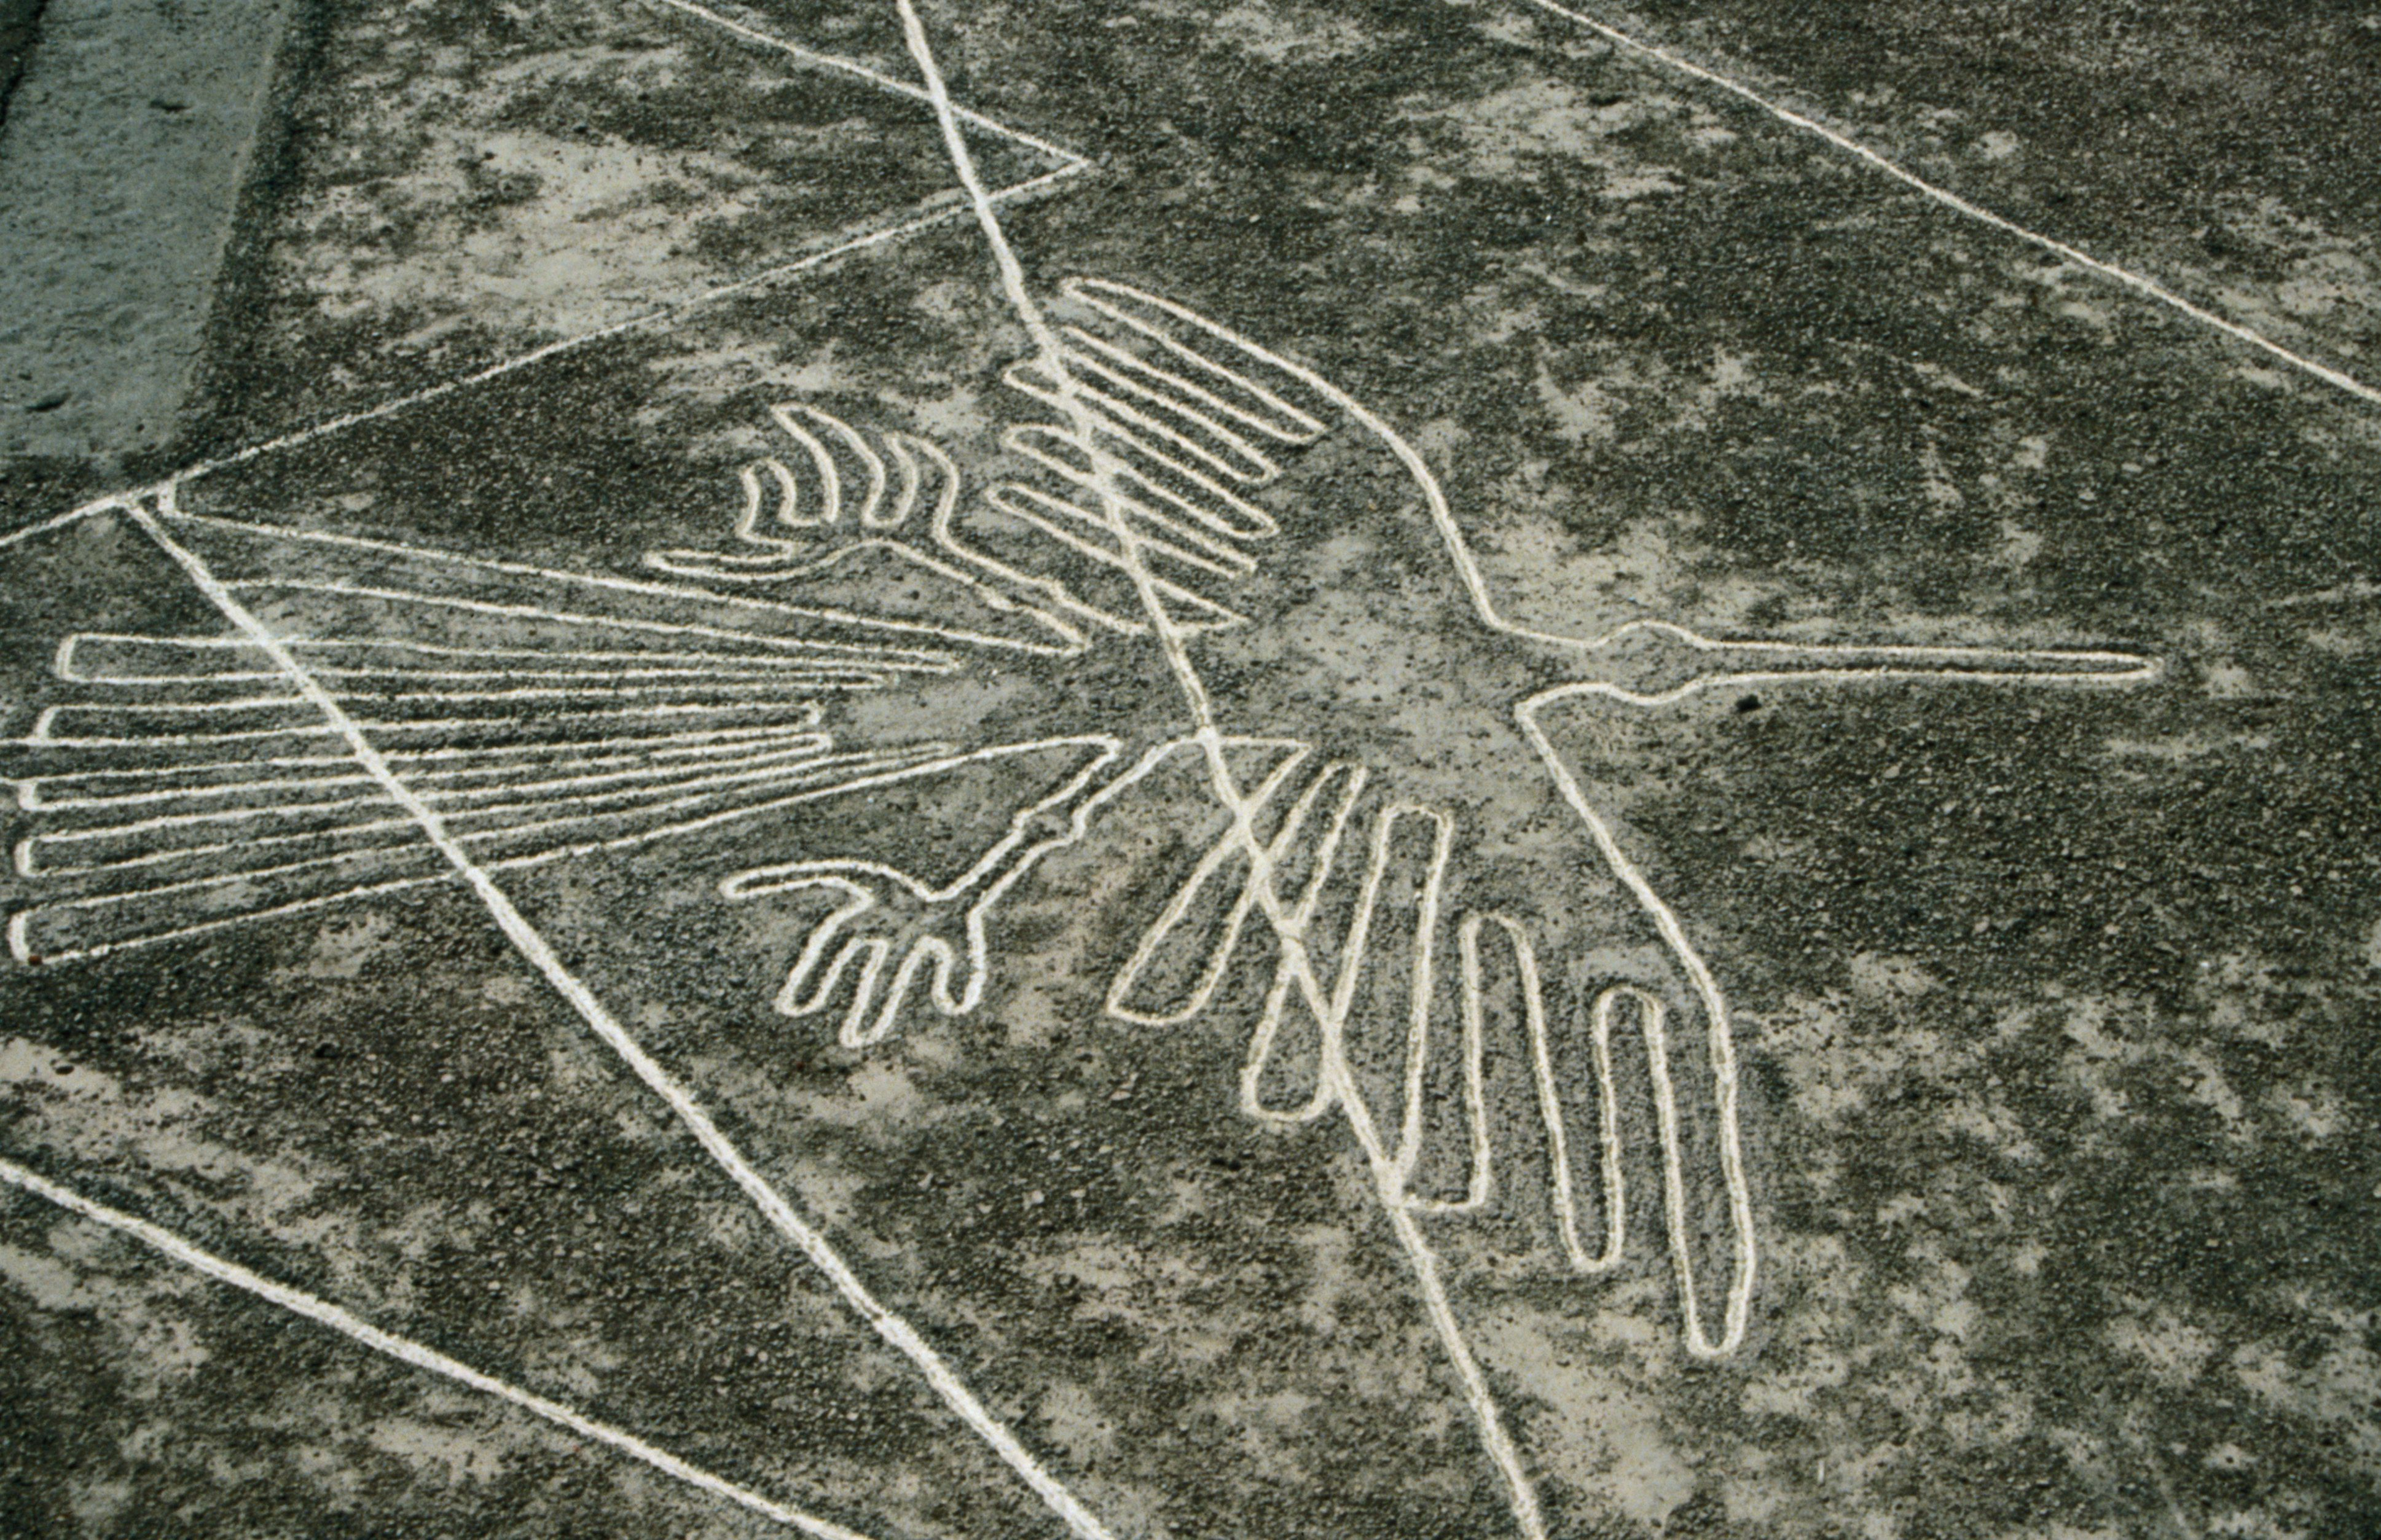 Areal view of Nasca LInes.